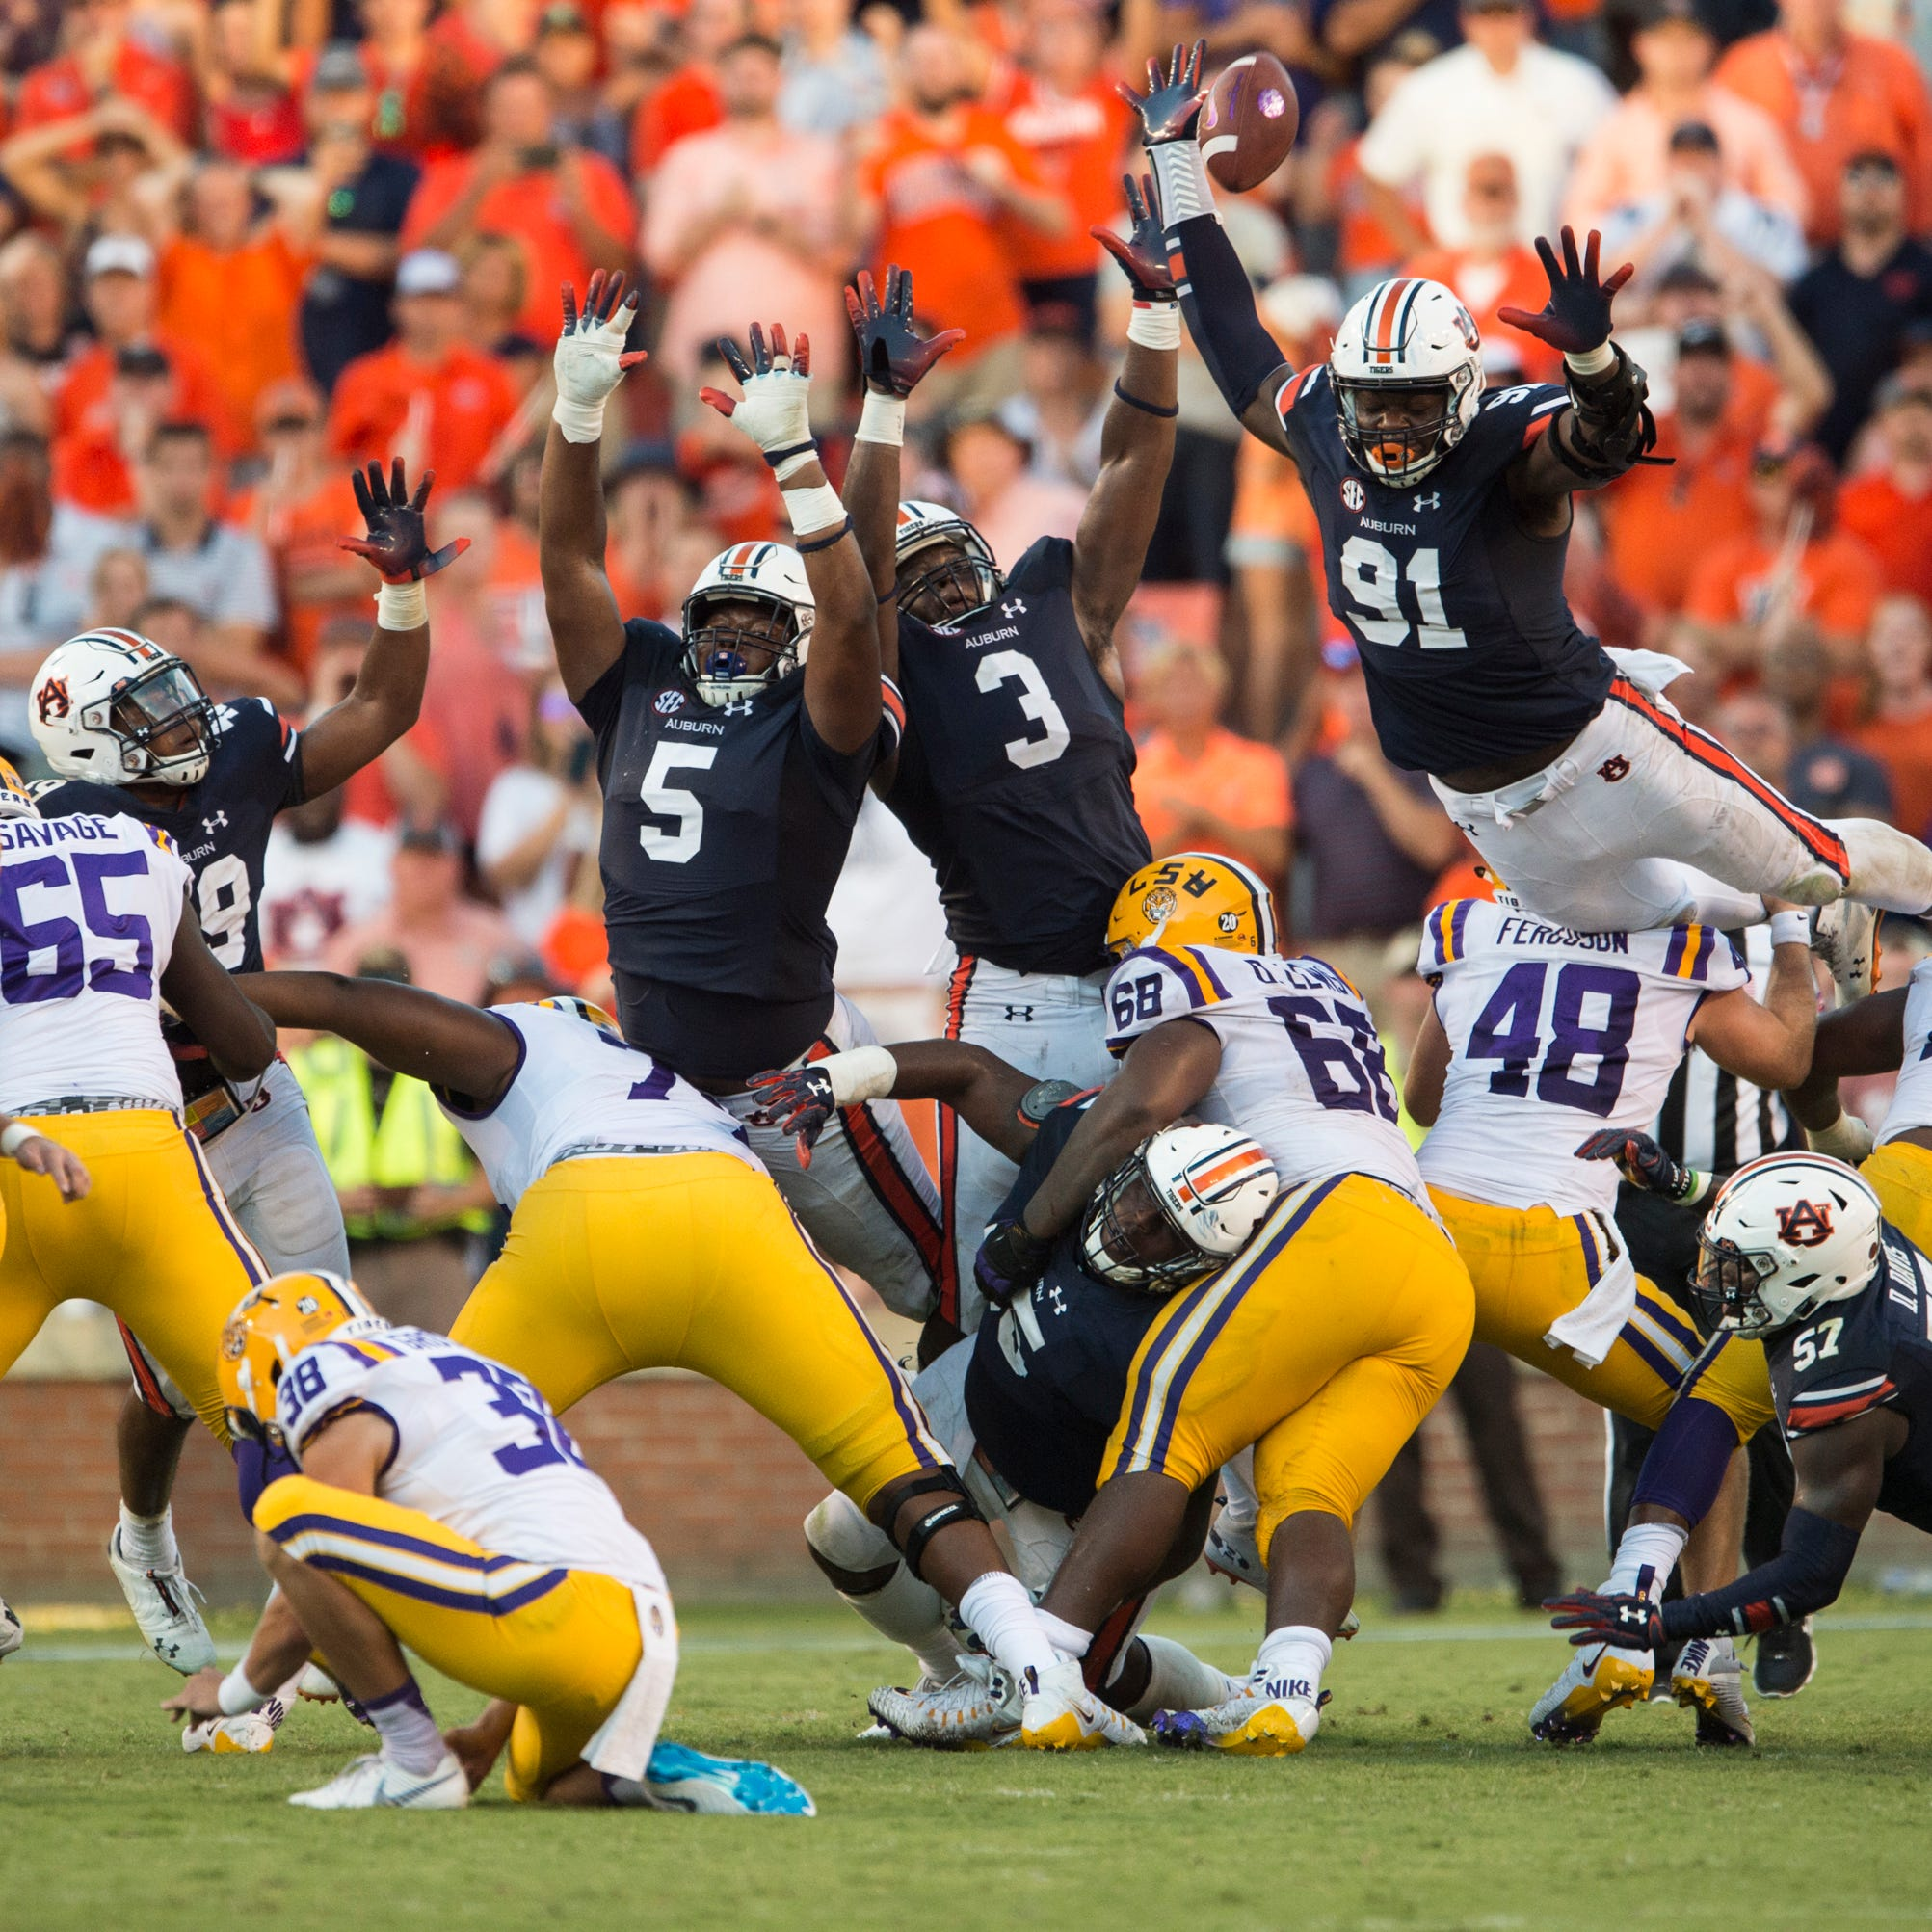 Oh, Coach O! LSU shocks No. 7 Auburn, 22-21, on 42-yard, walk-off field goal by Cole Tracy